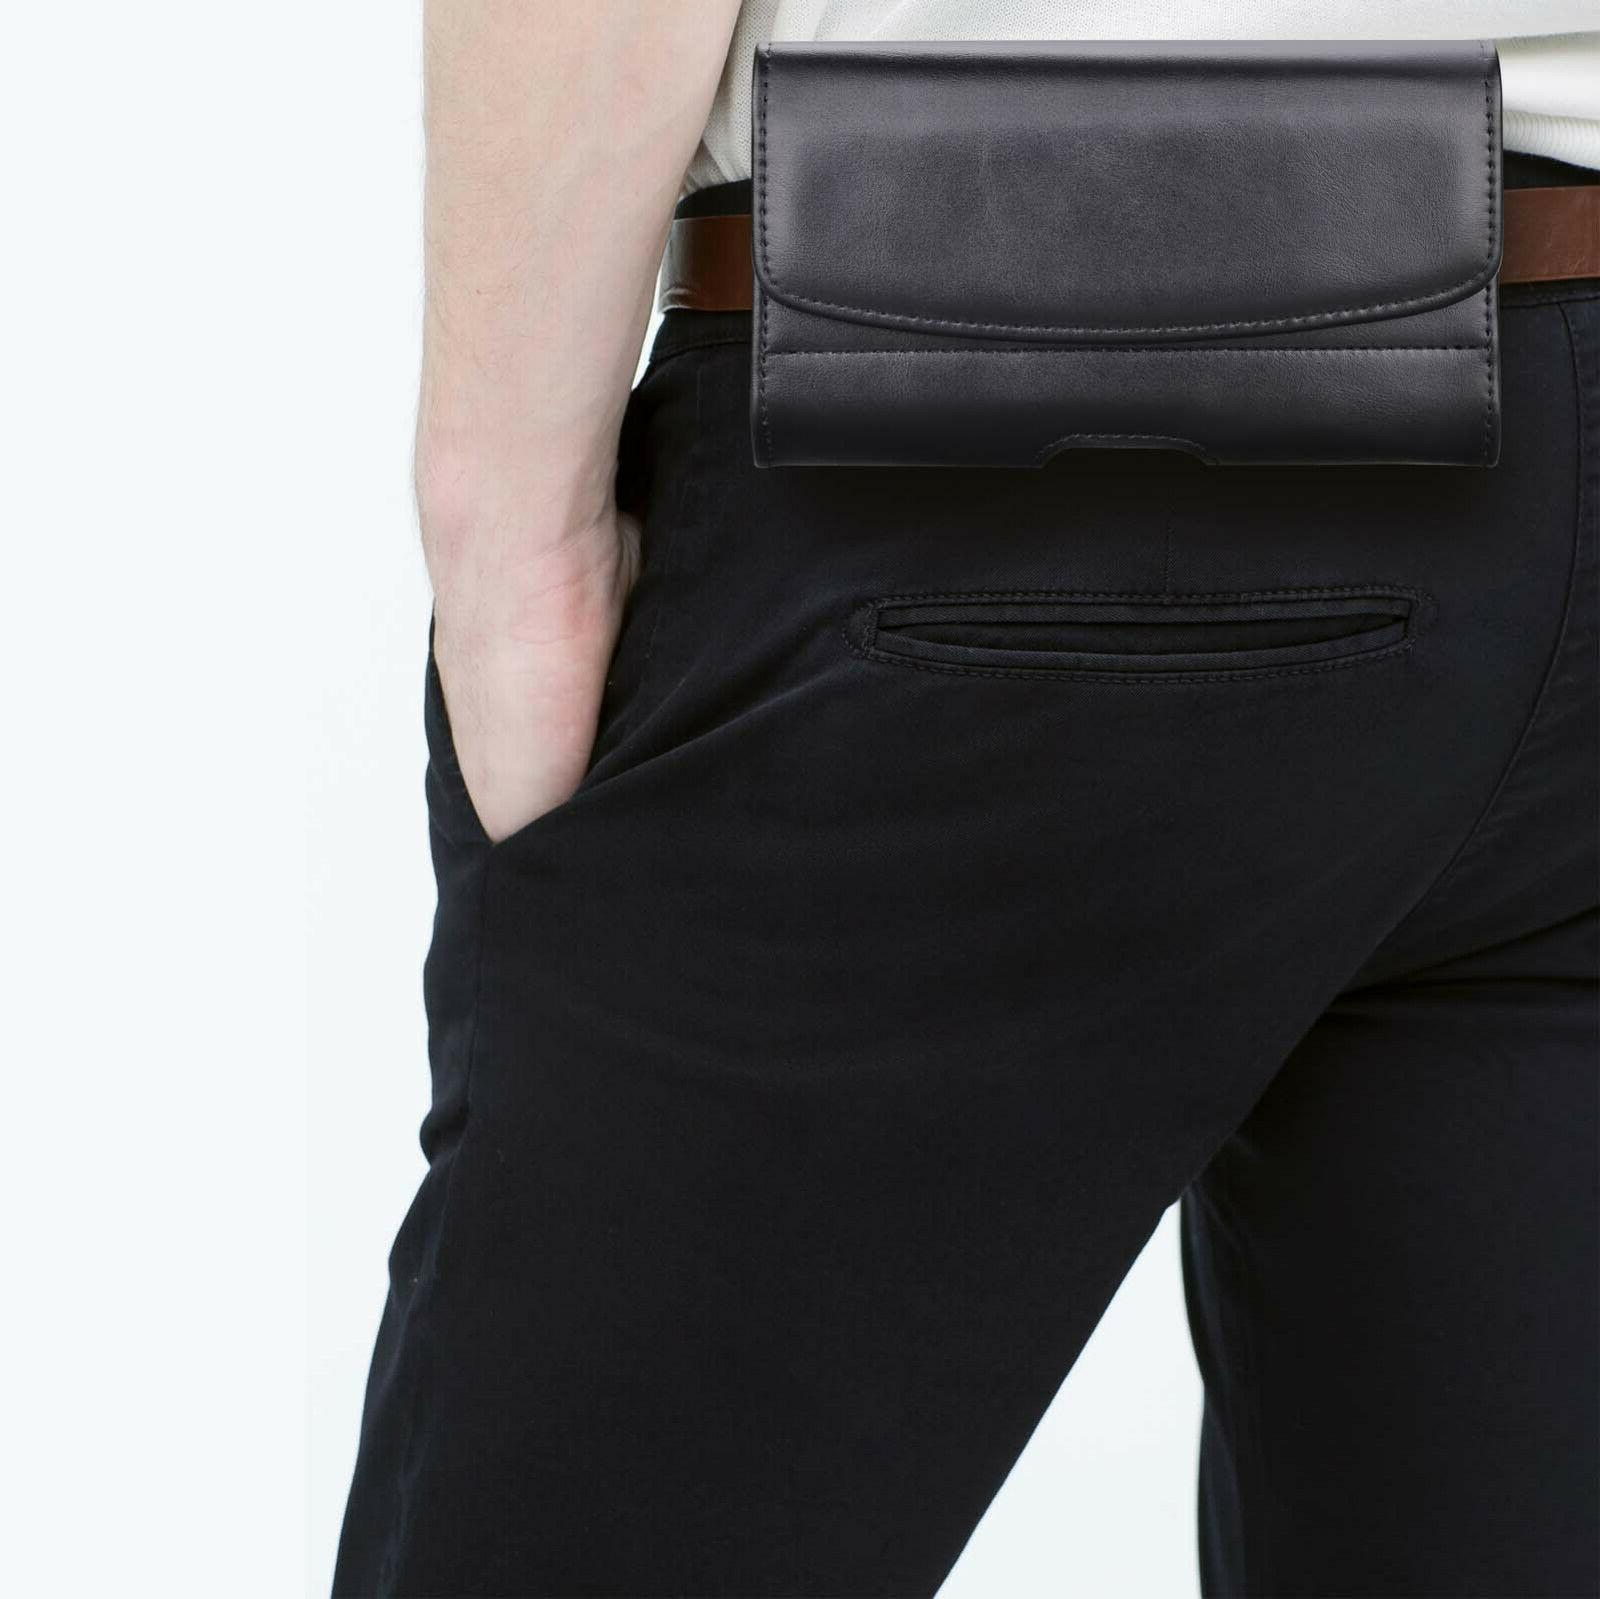 Leather Phone Belt Holster Pouch Holder